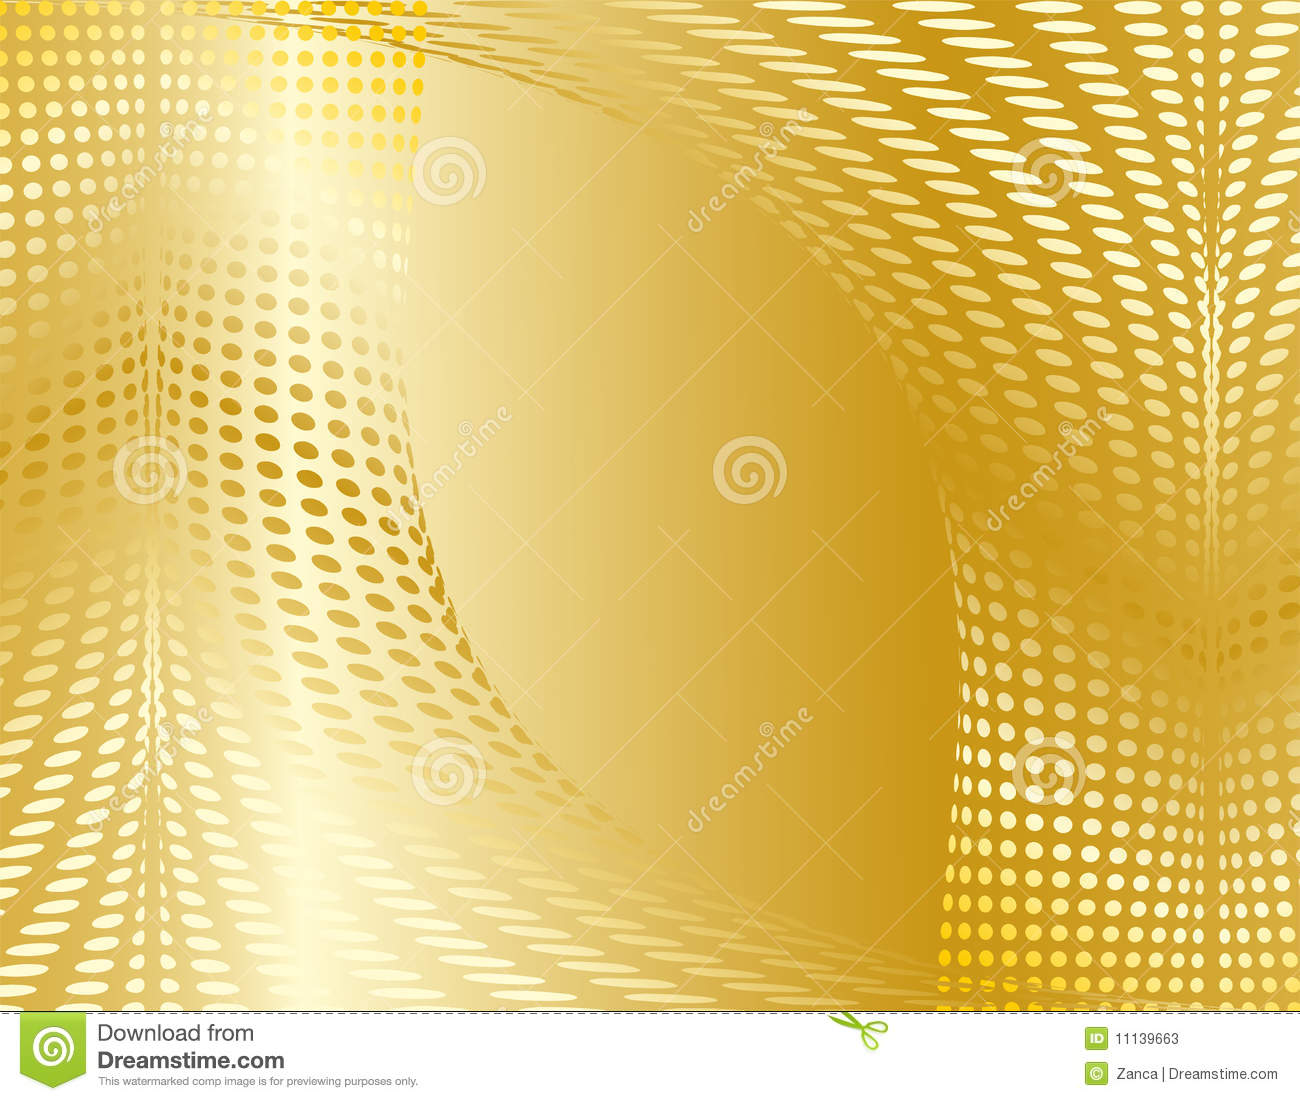 en color concrete pattern free photo pixabay gold structure design on